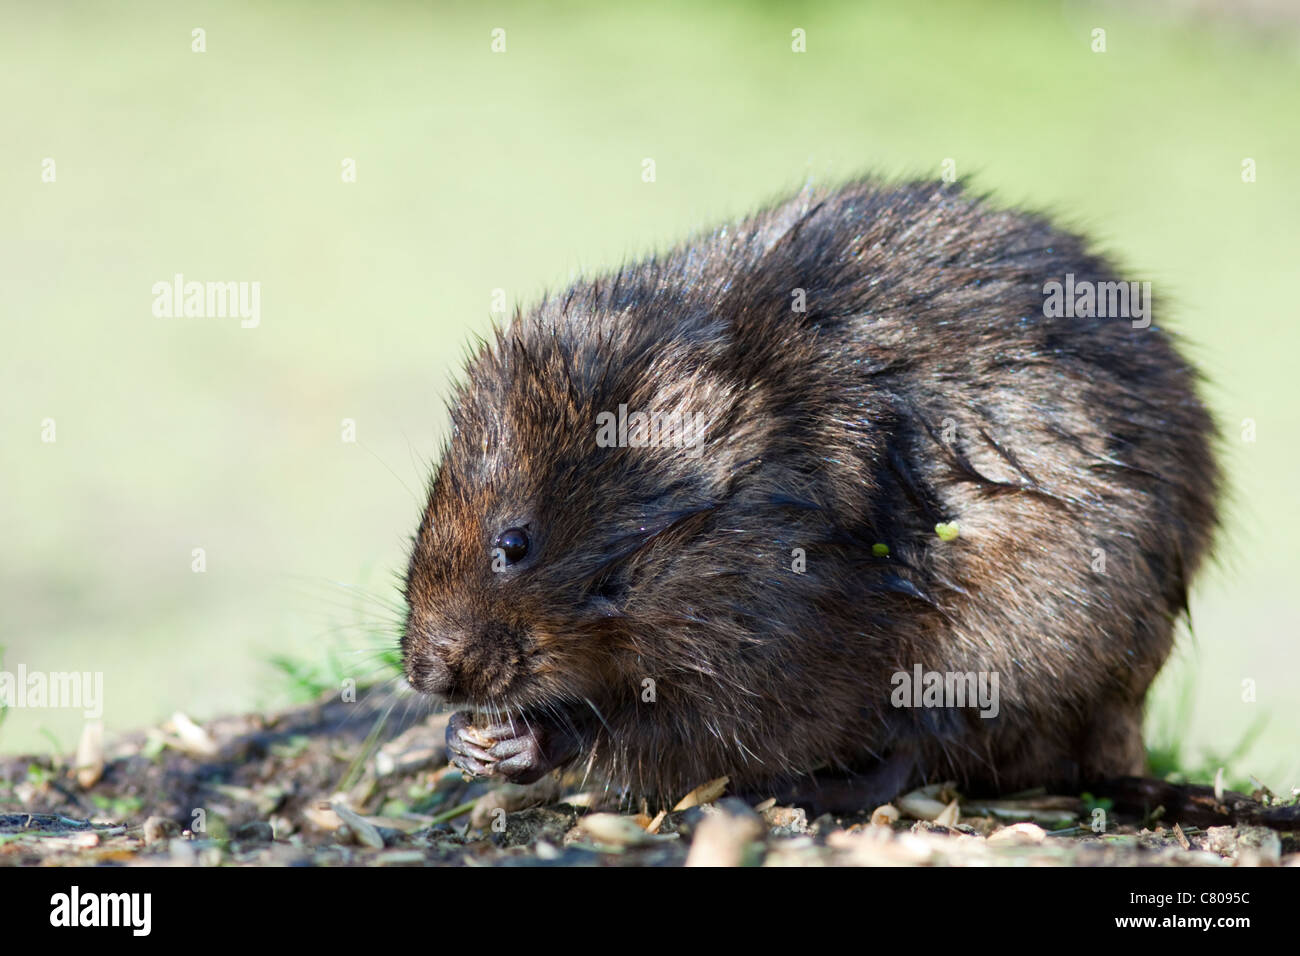 Water vole (Arvicola terrestris), captive animal owned by the British Wildlife Centre, Lingfield, Surrey, England, - Stock Image